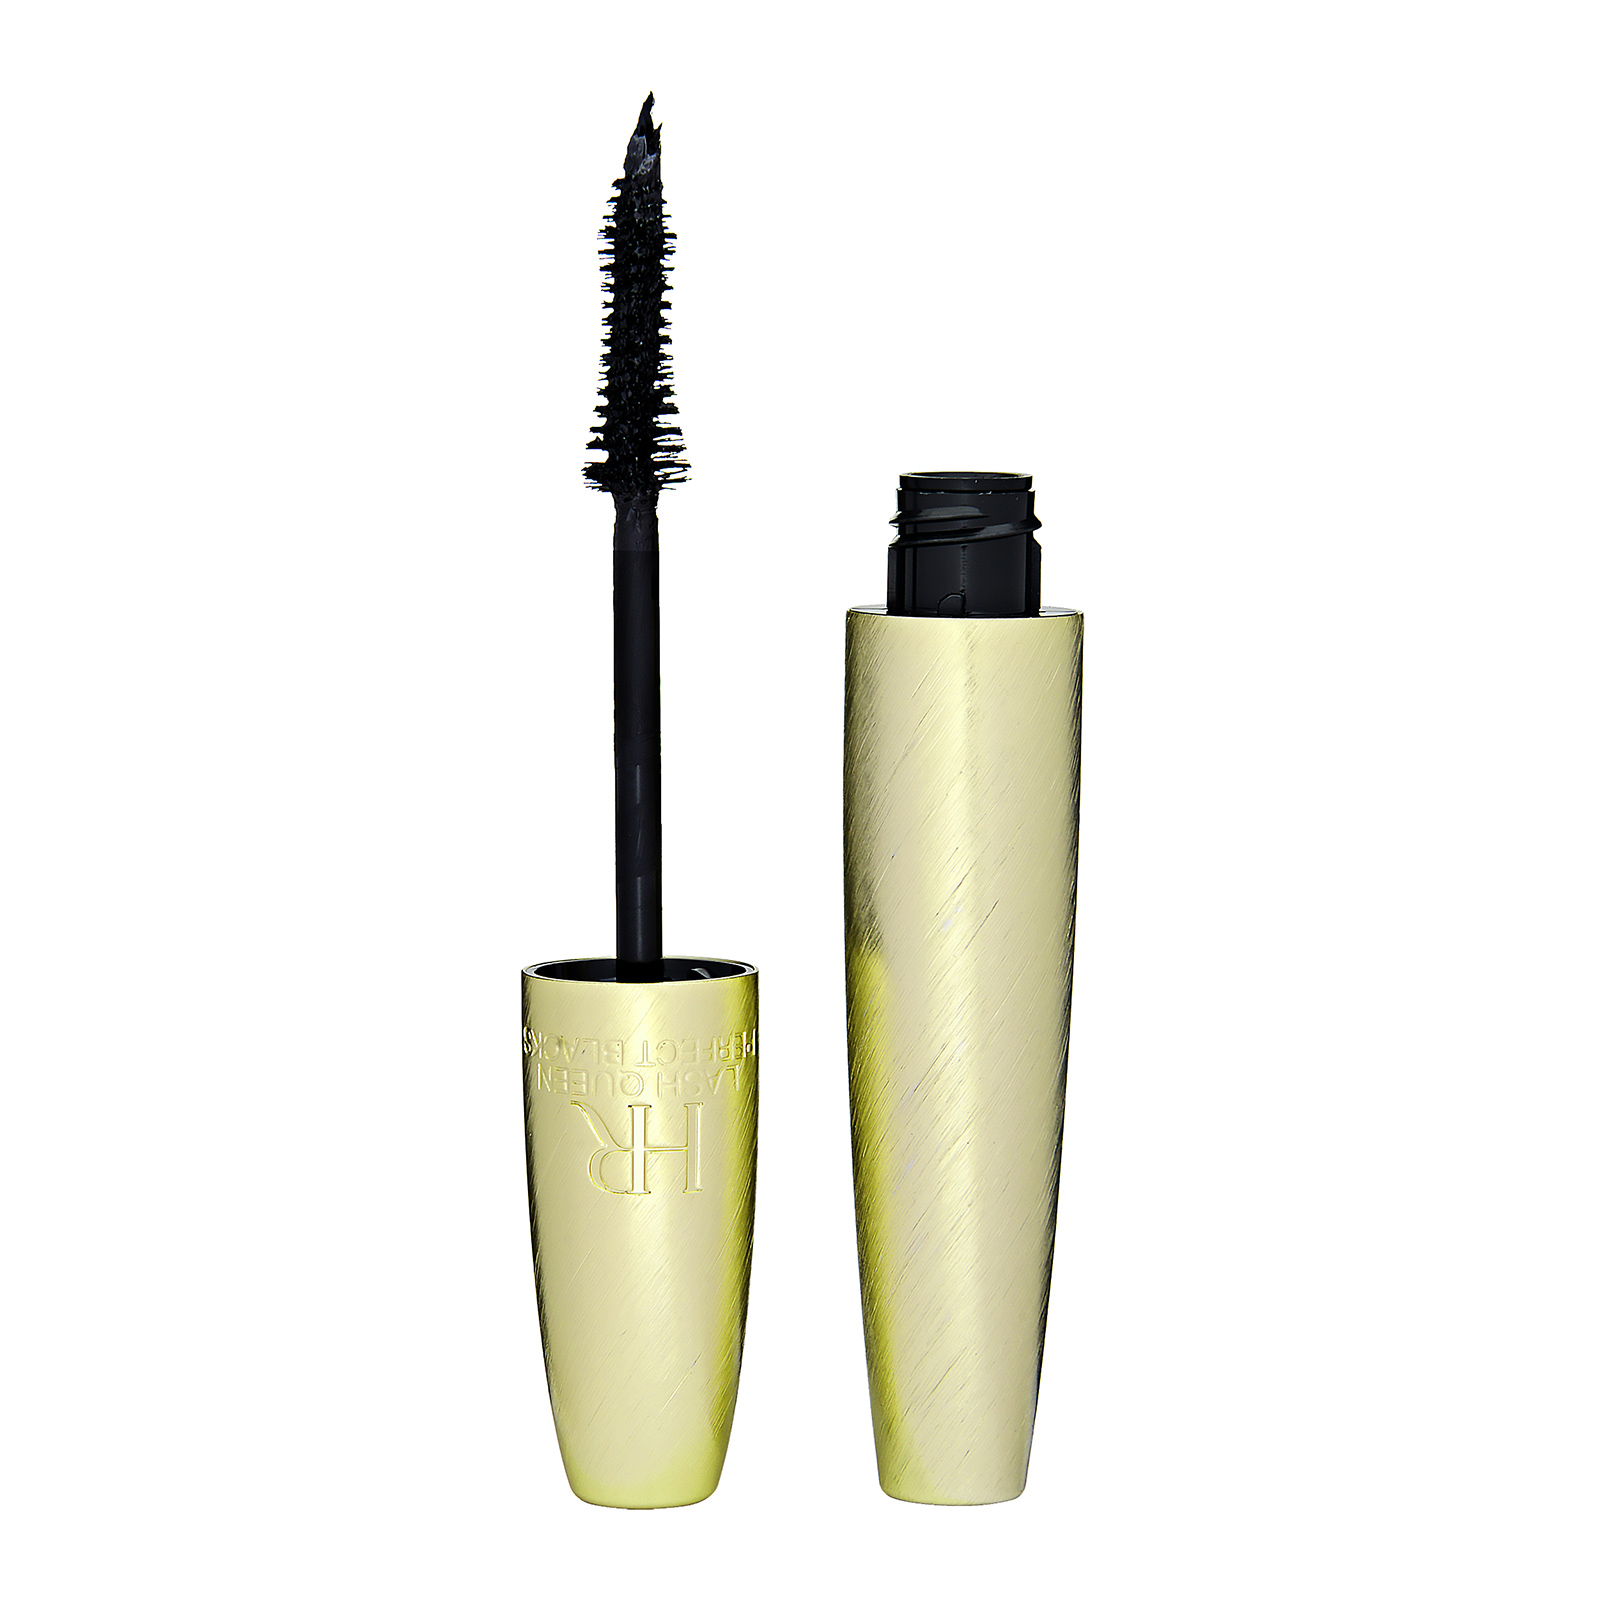 Helena Rubinstein Lash Queen  Perfect Blacks Mascara 01 Lasting Black, 0.24oz, 7ml